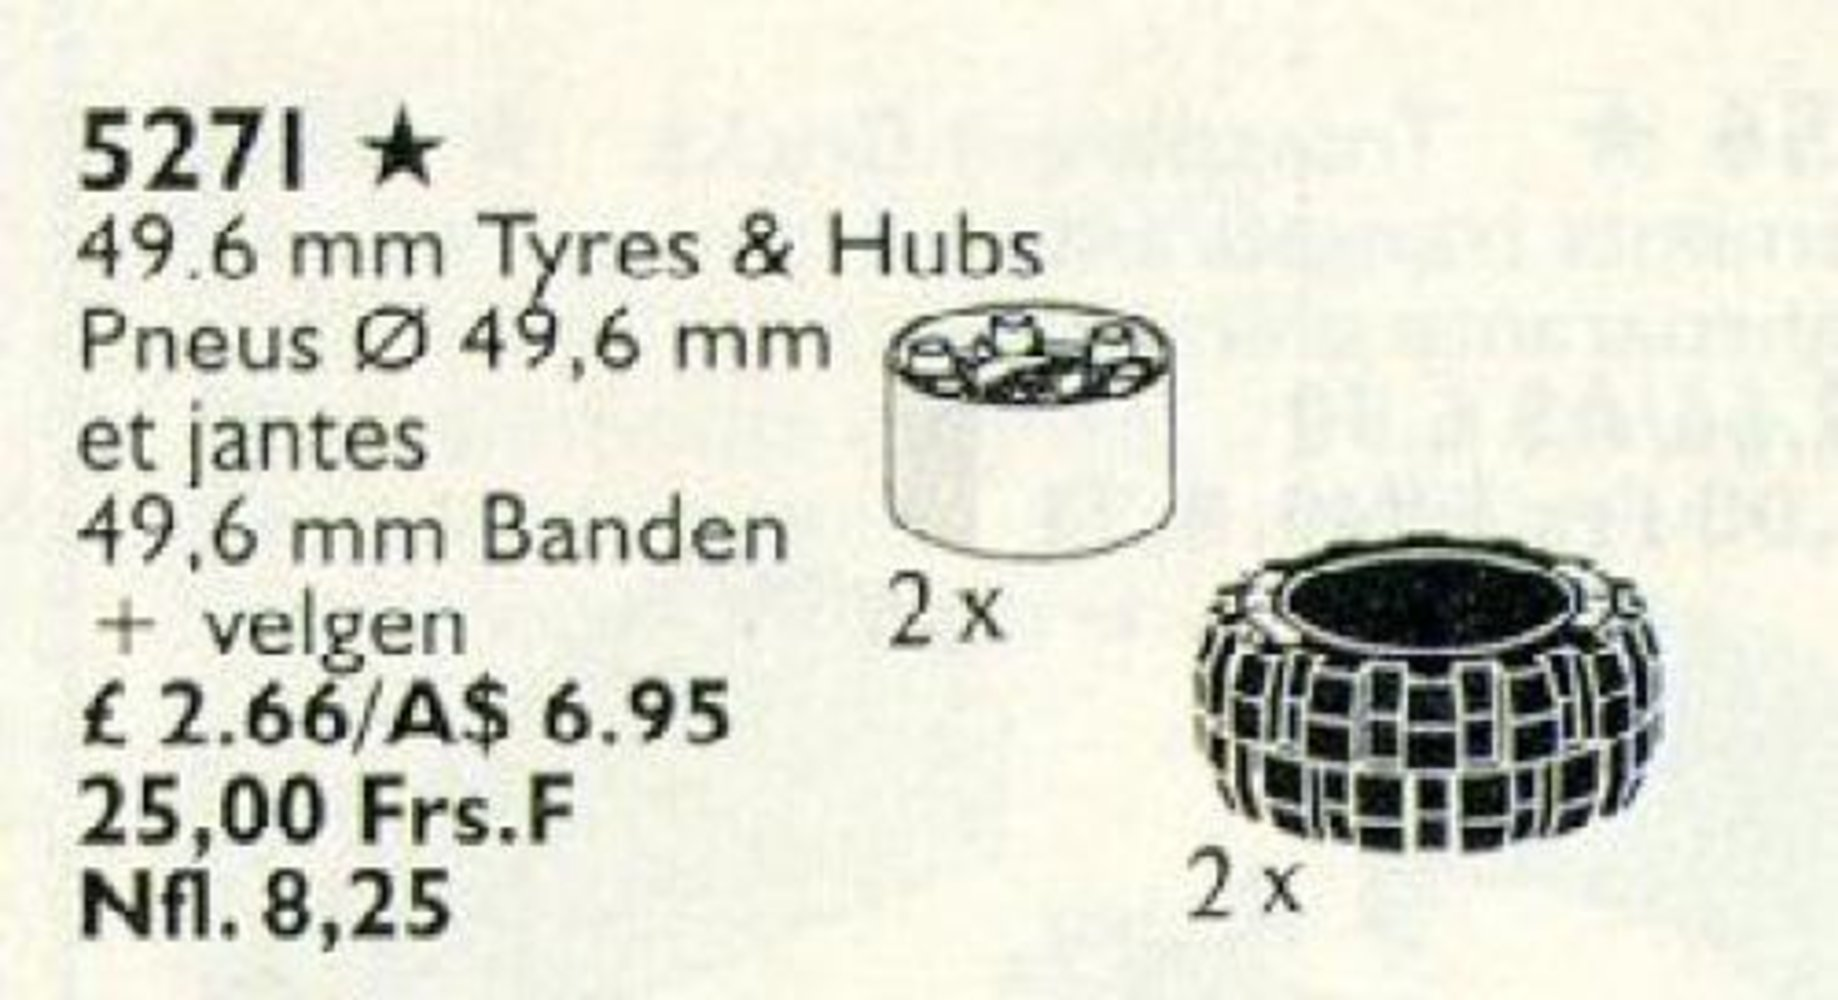 White Hubs & Tires / 49.6 mm Tyres & Hubs